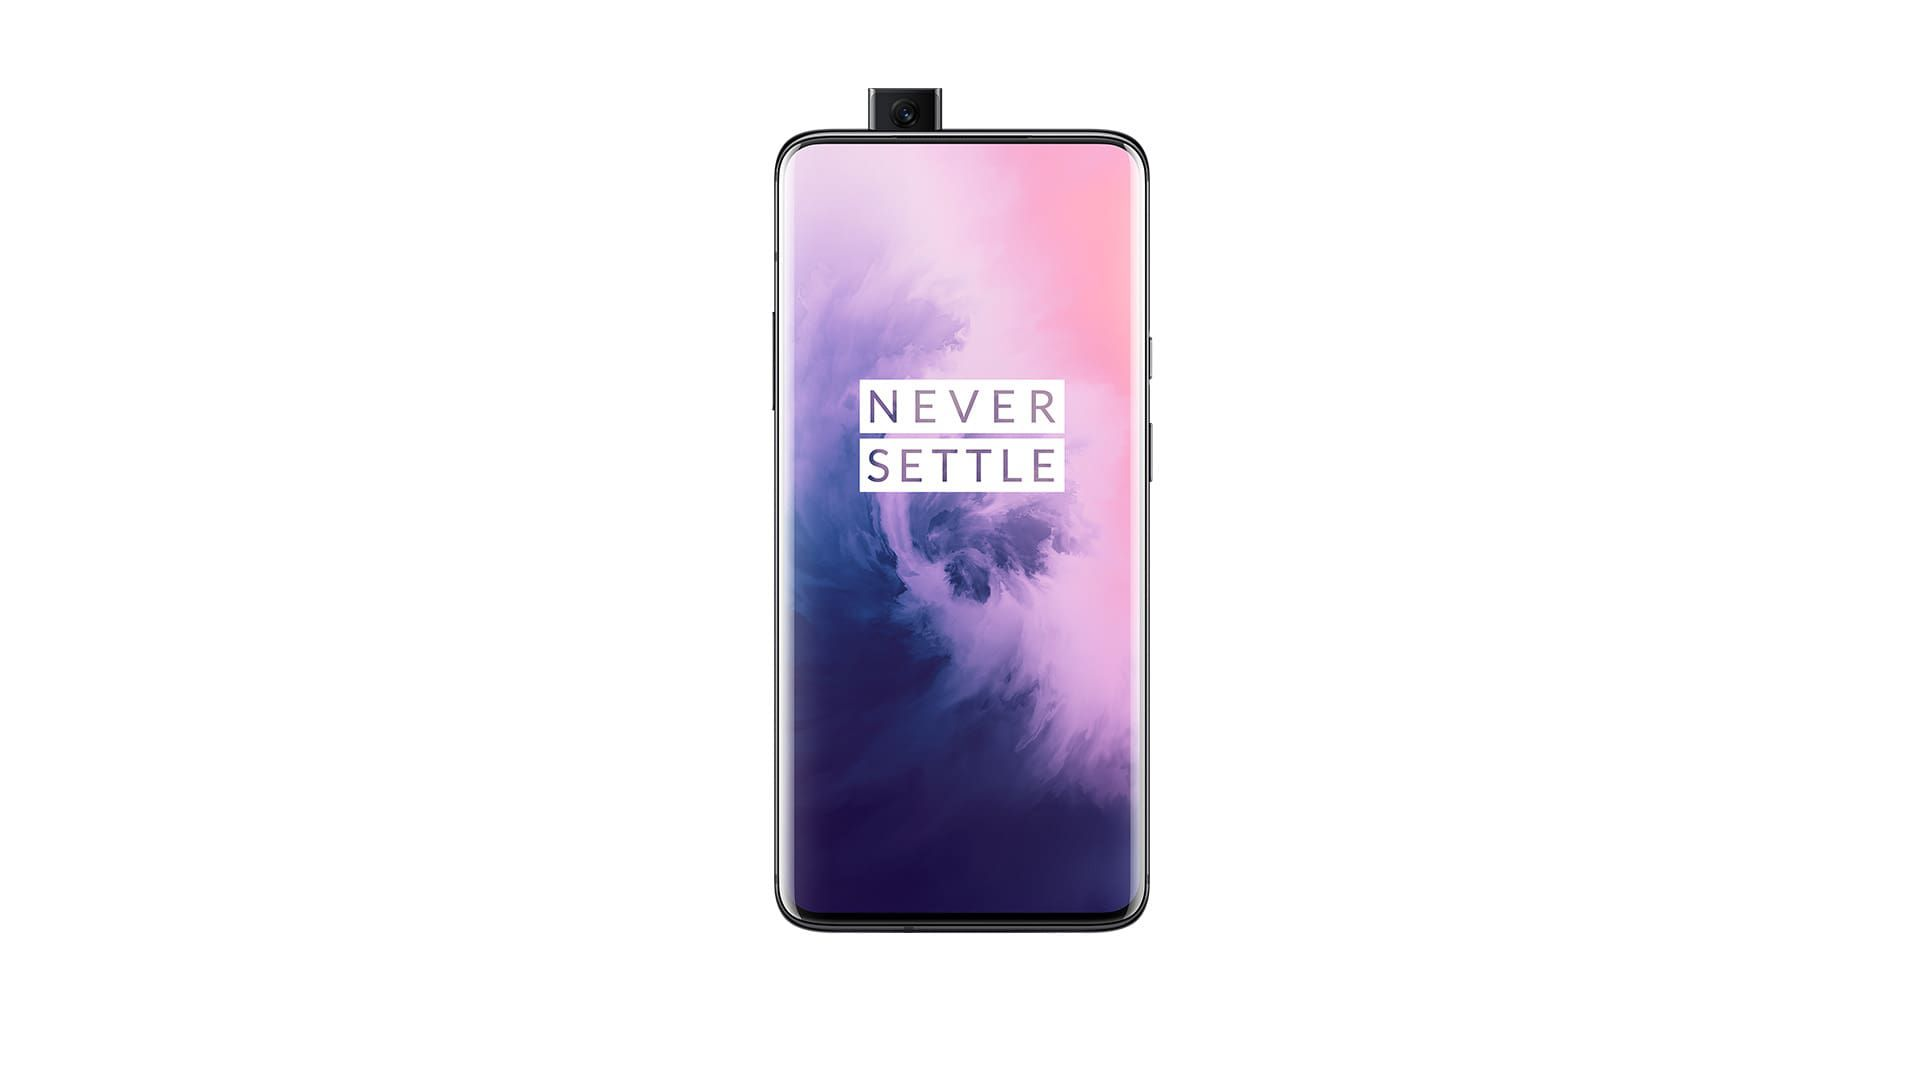 The OnePlus 7 Pro phone facing forward